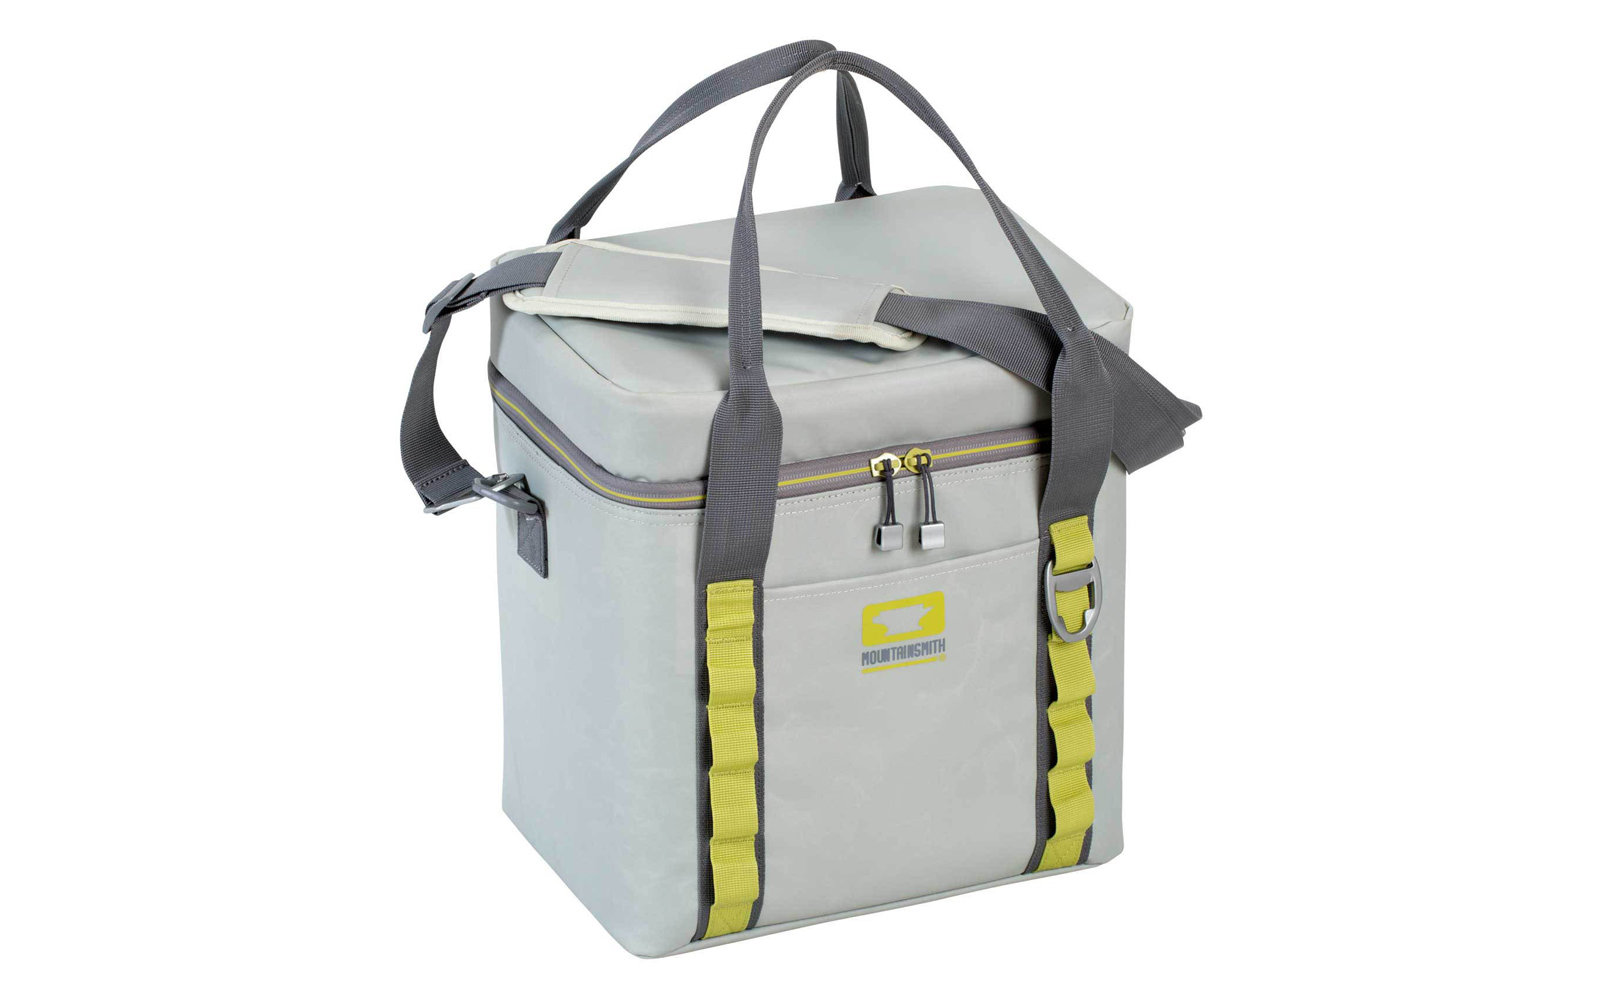 Mountainsmith The Cooloir 12 Soft Cooler